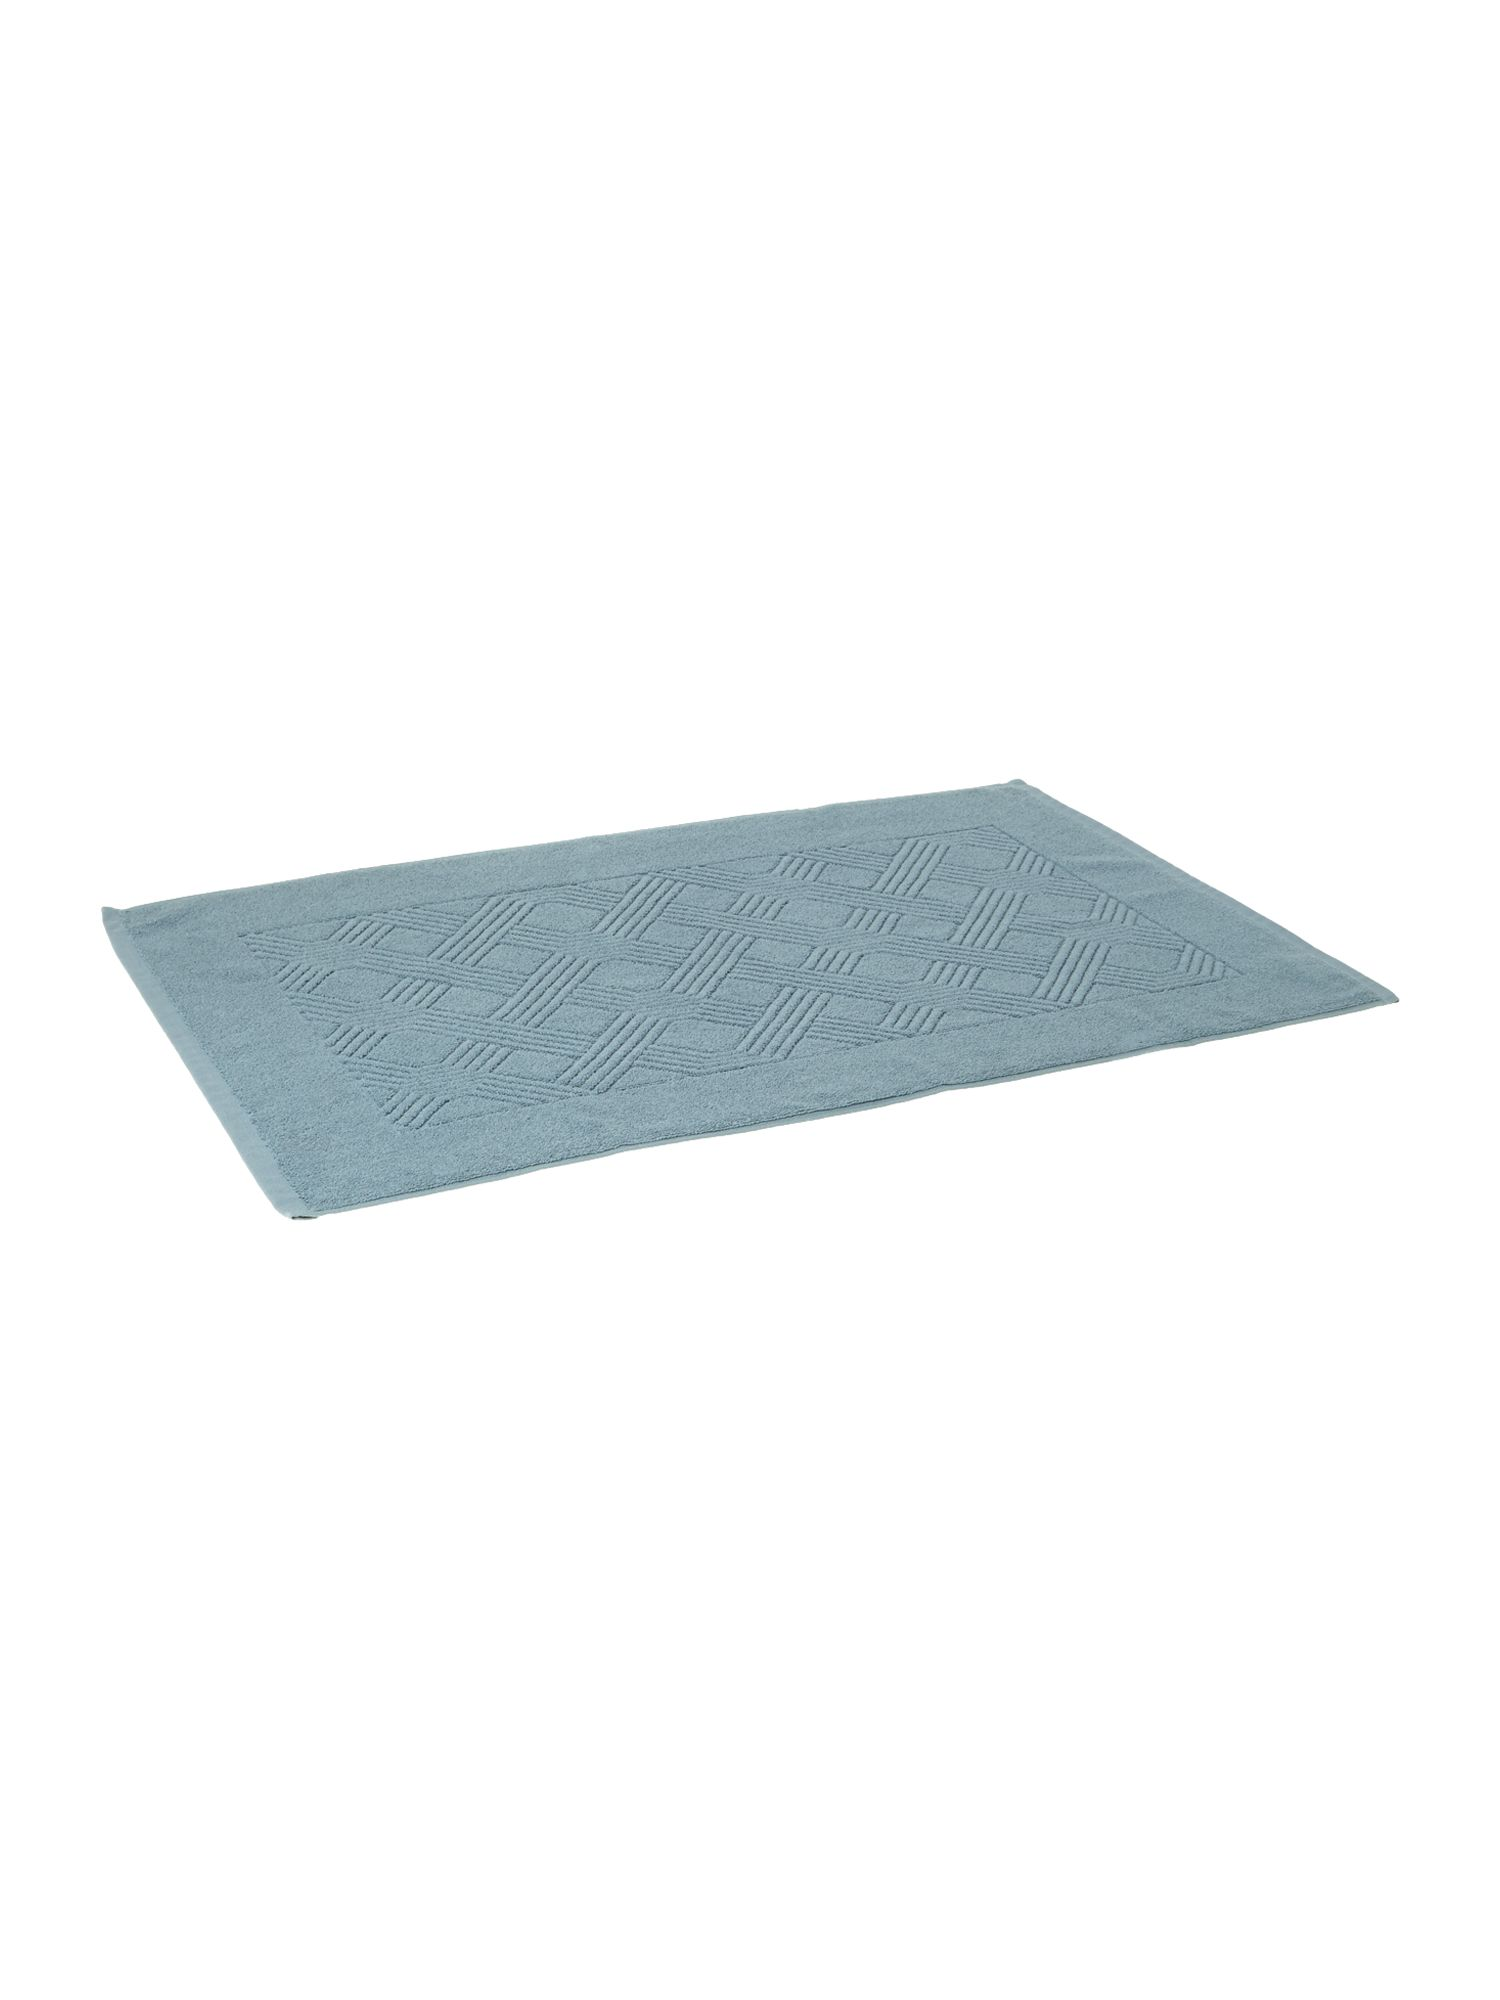 Geometric jaquard bath mat in blue